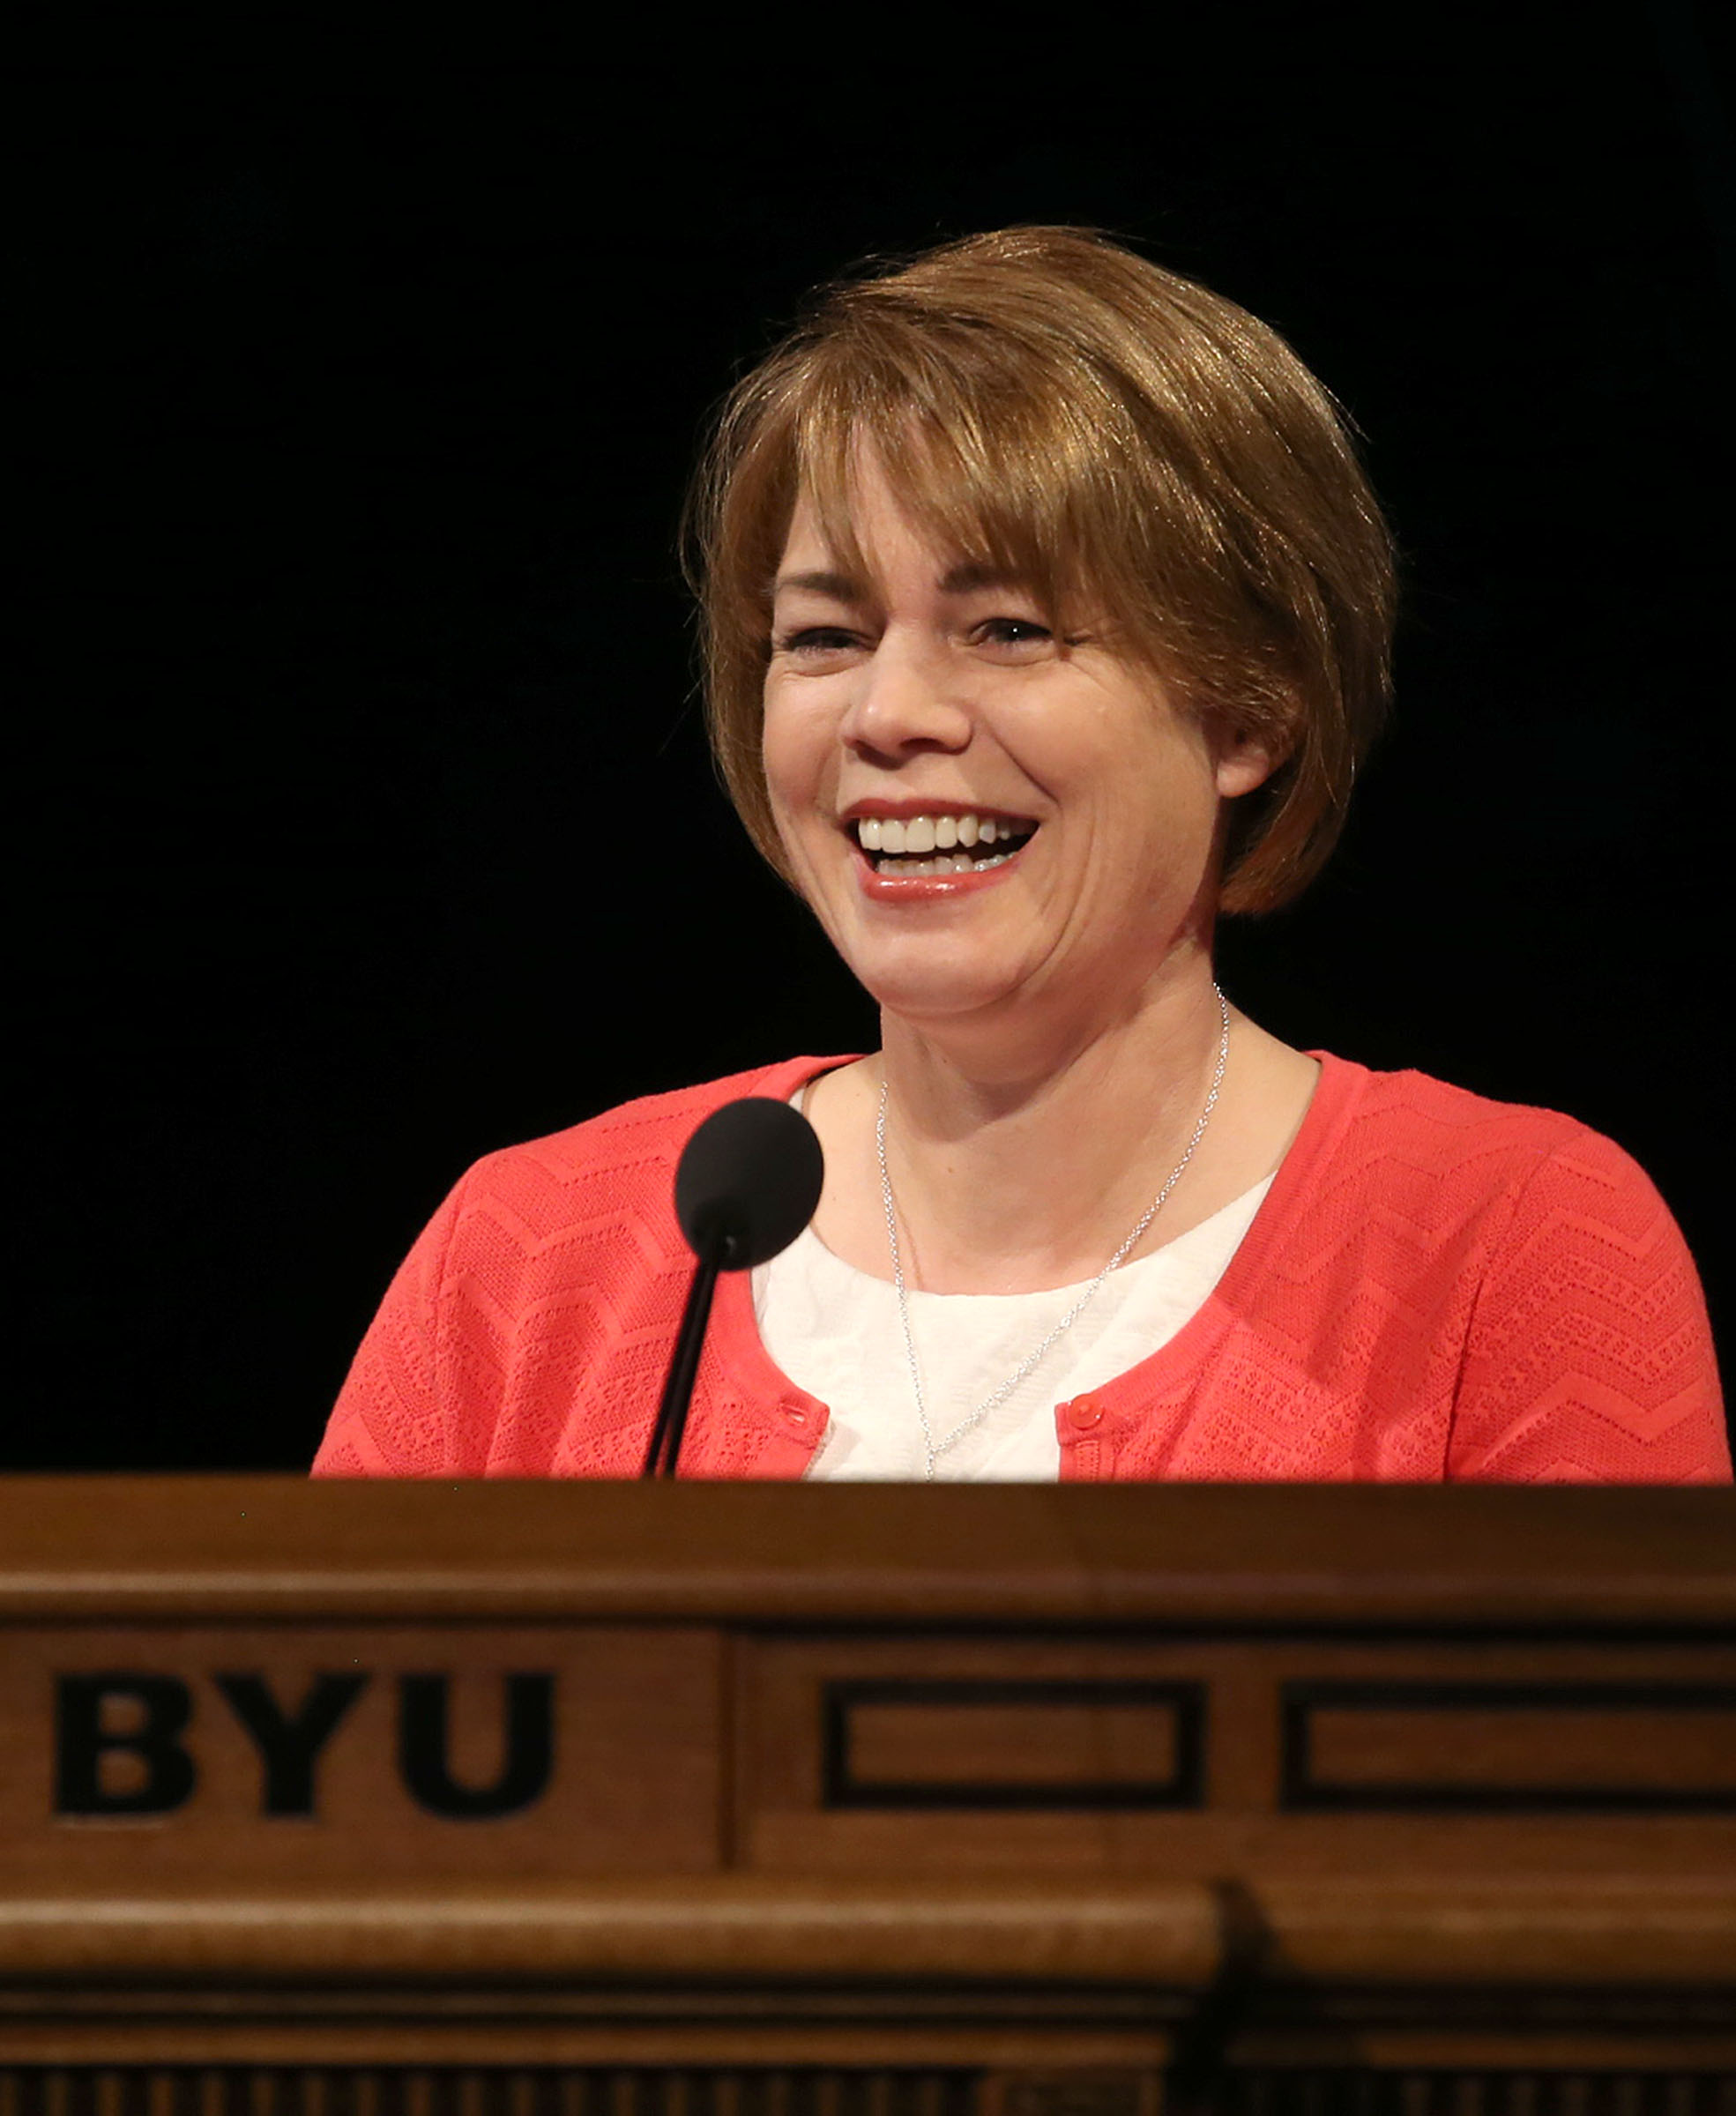 Sharon Eubank, Relief Society Presidency First Counselor, speaks at the BYU Women's Conference in the Marriott Center at BYU in Provo on Friday, May 5, 2017.